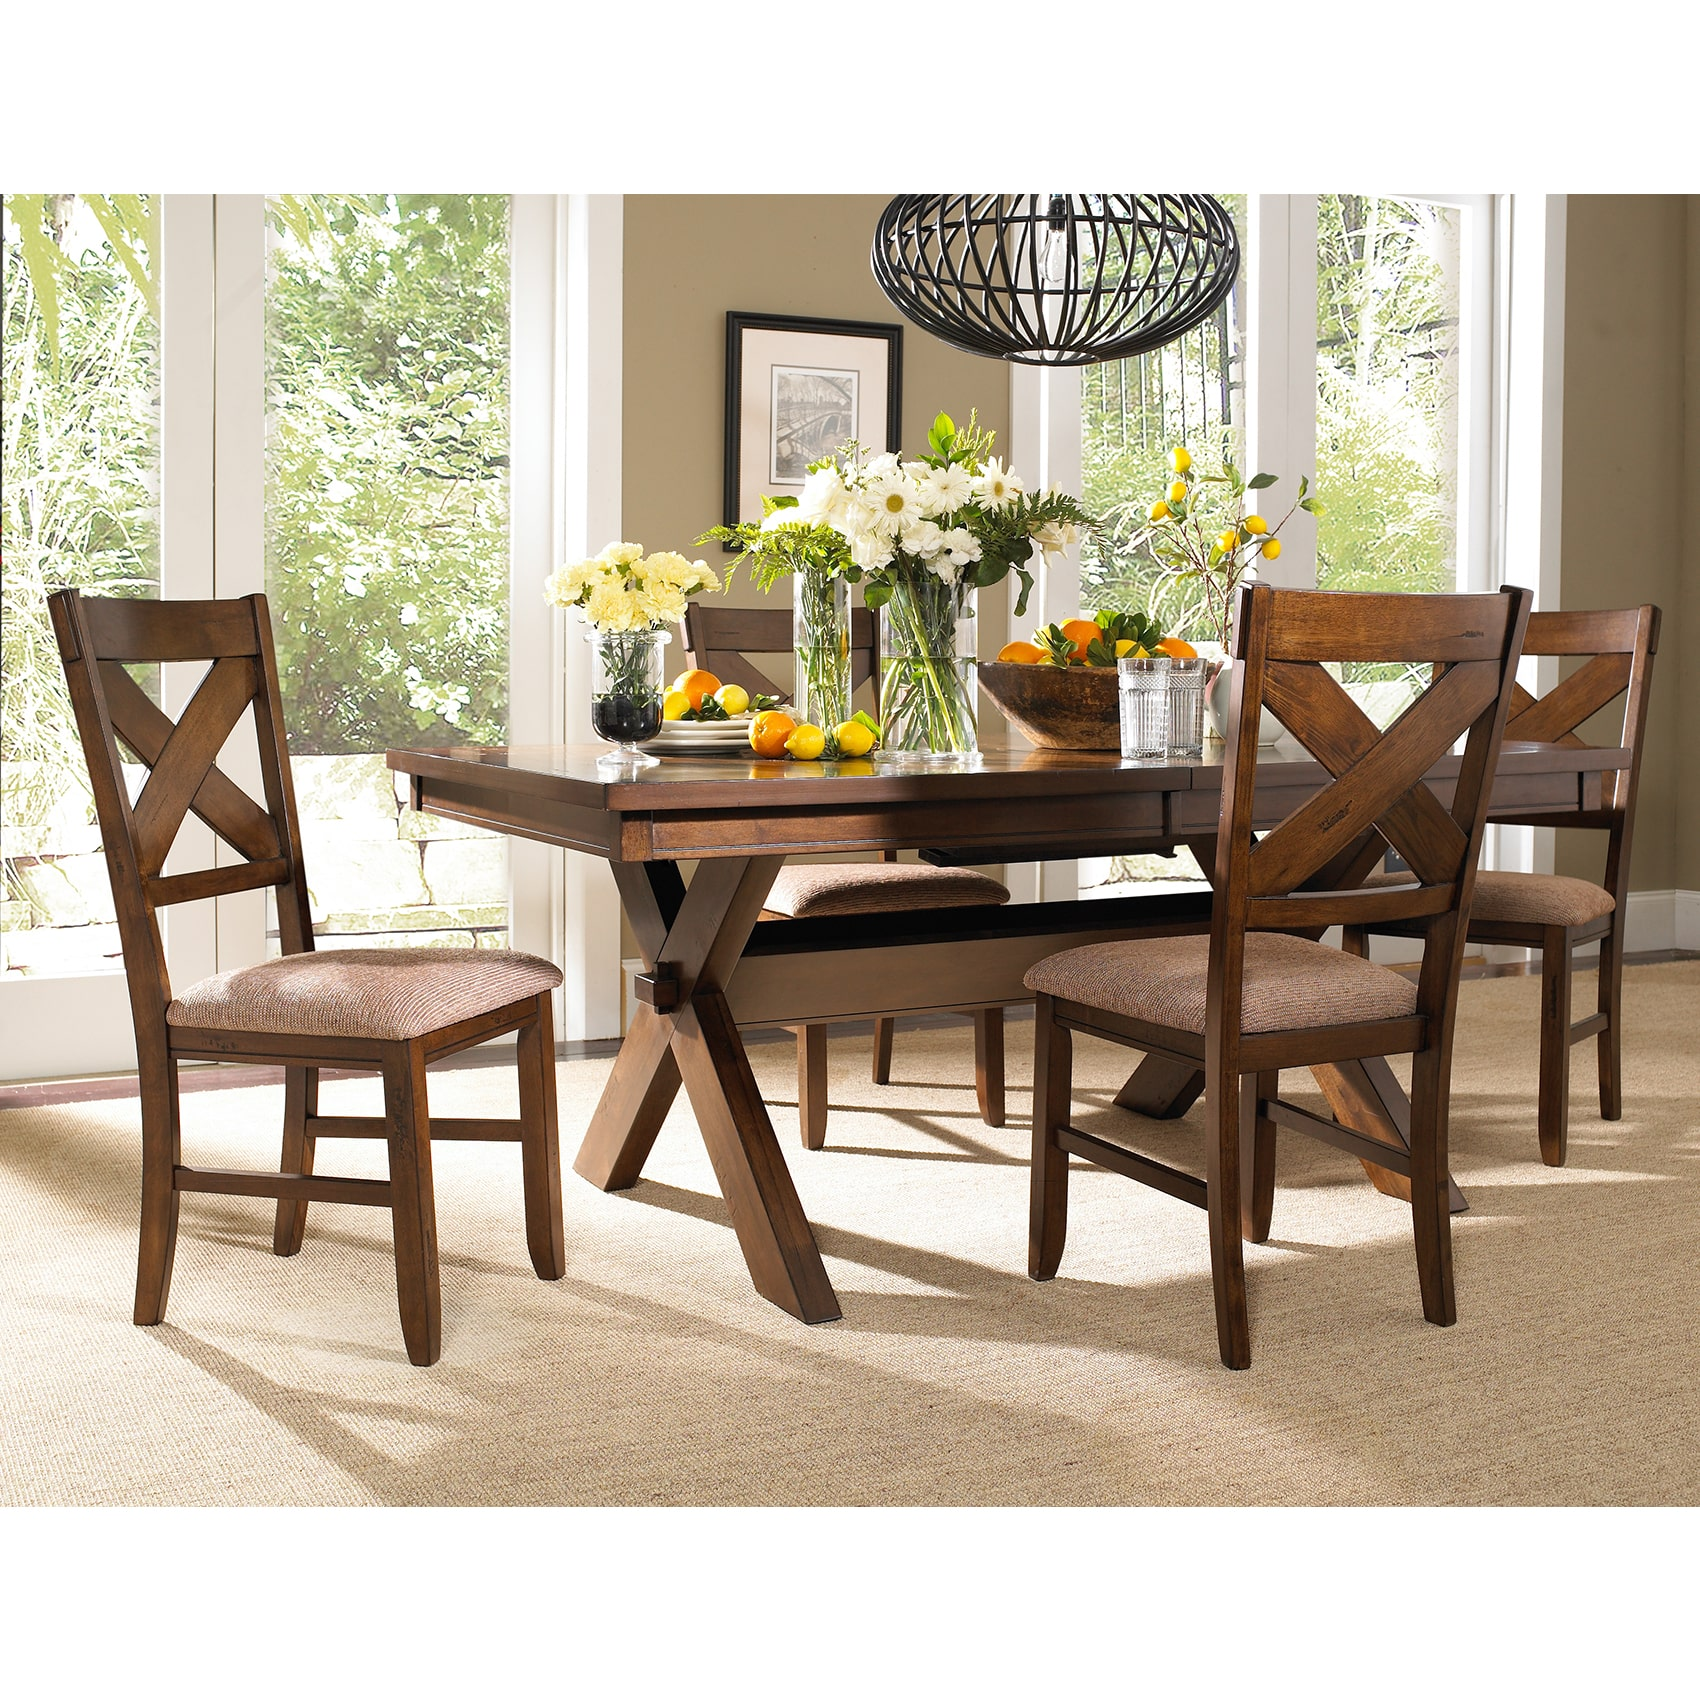 Roundhill Furniture Karven 5 Piece Wooden Dining Table Set